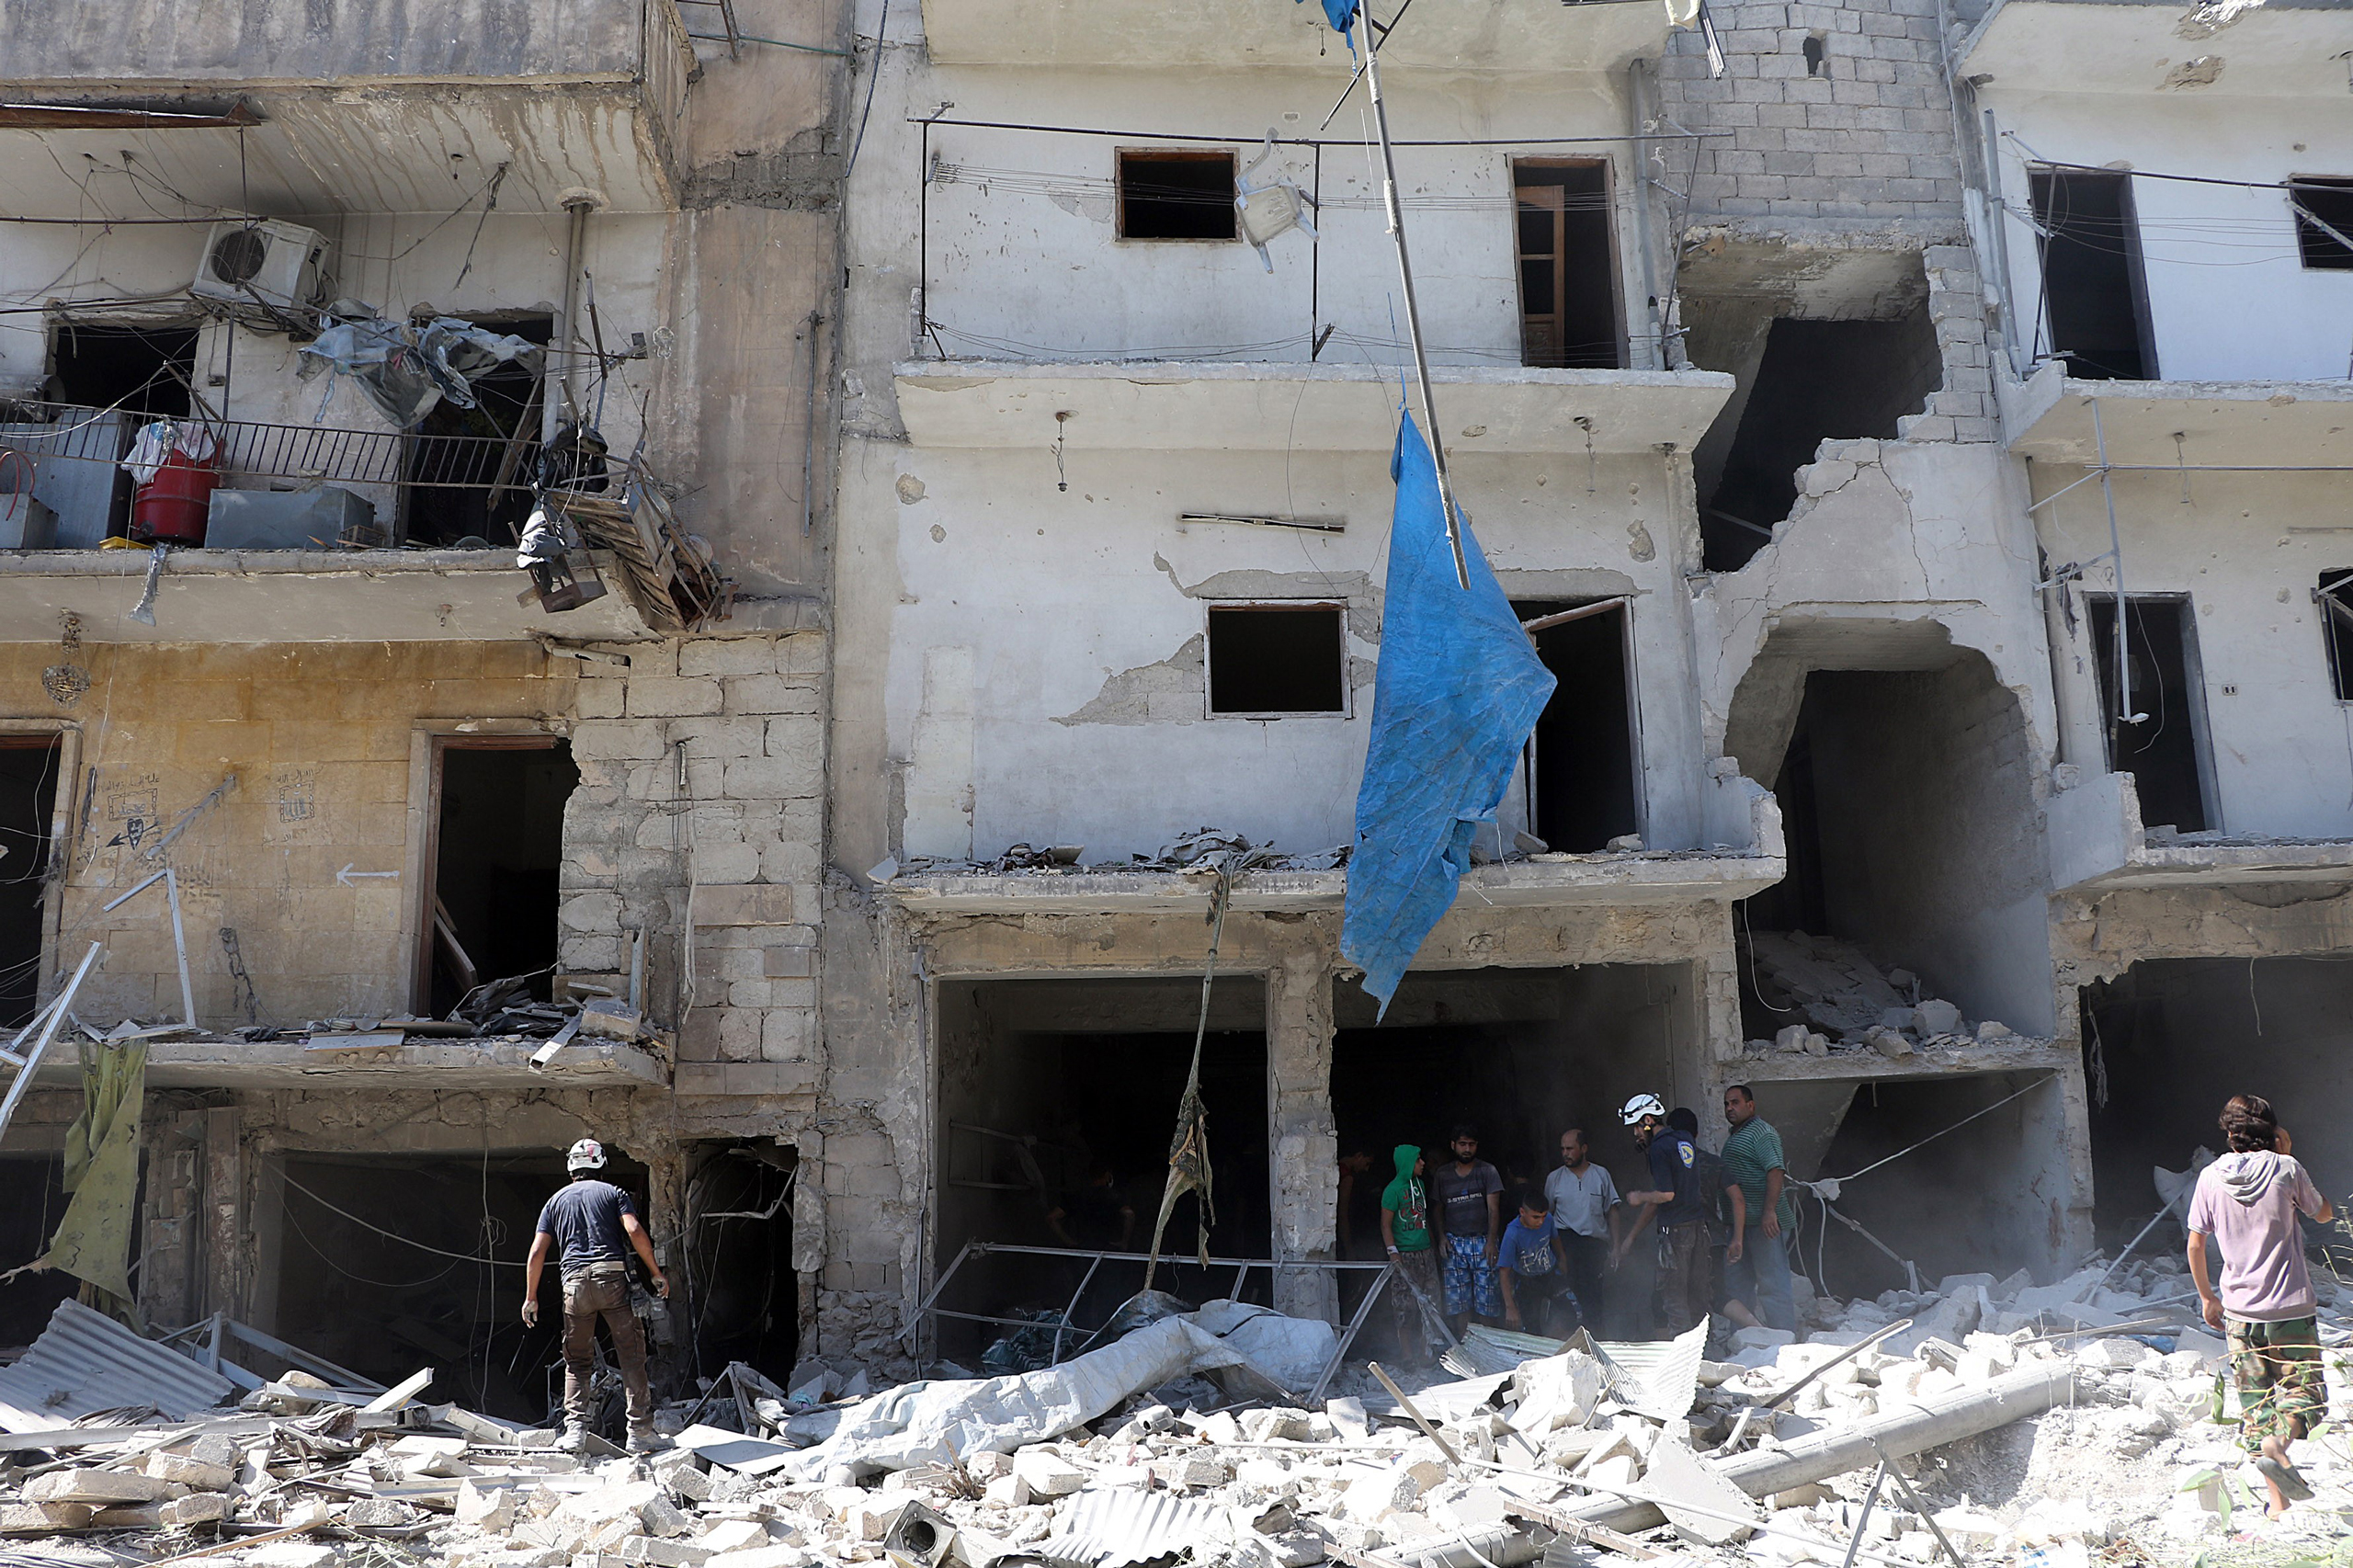 Search and rescue team members inspect the debris of buildings after Russian army aircrafts hit residential areas in the Sukari district of Aleppo, Syria, on Sept. 7, 2016.